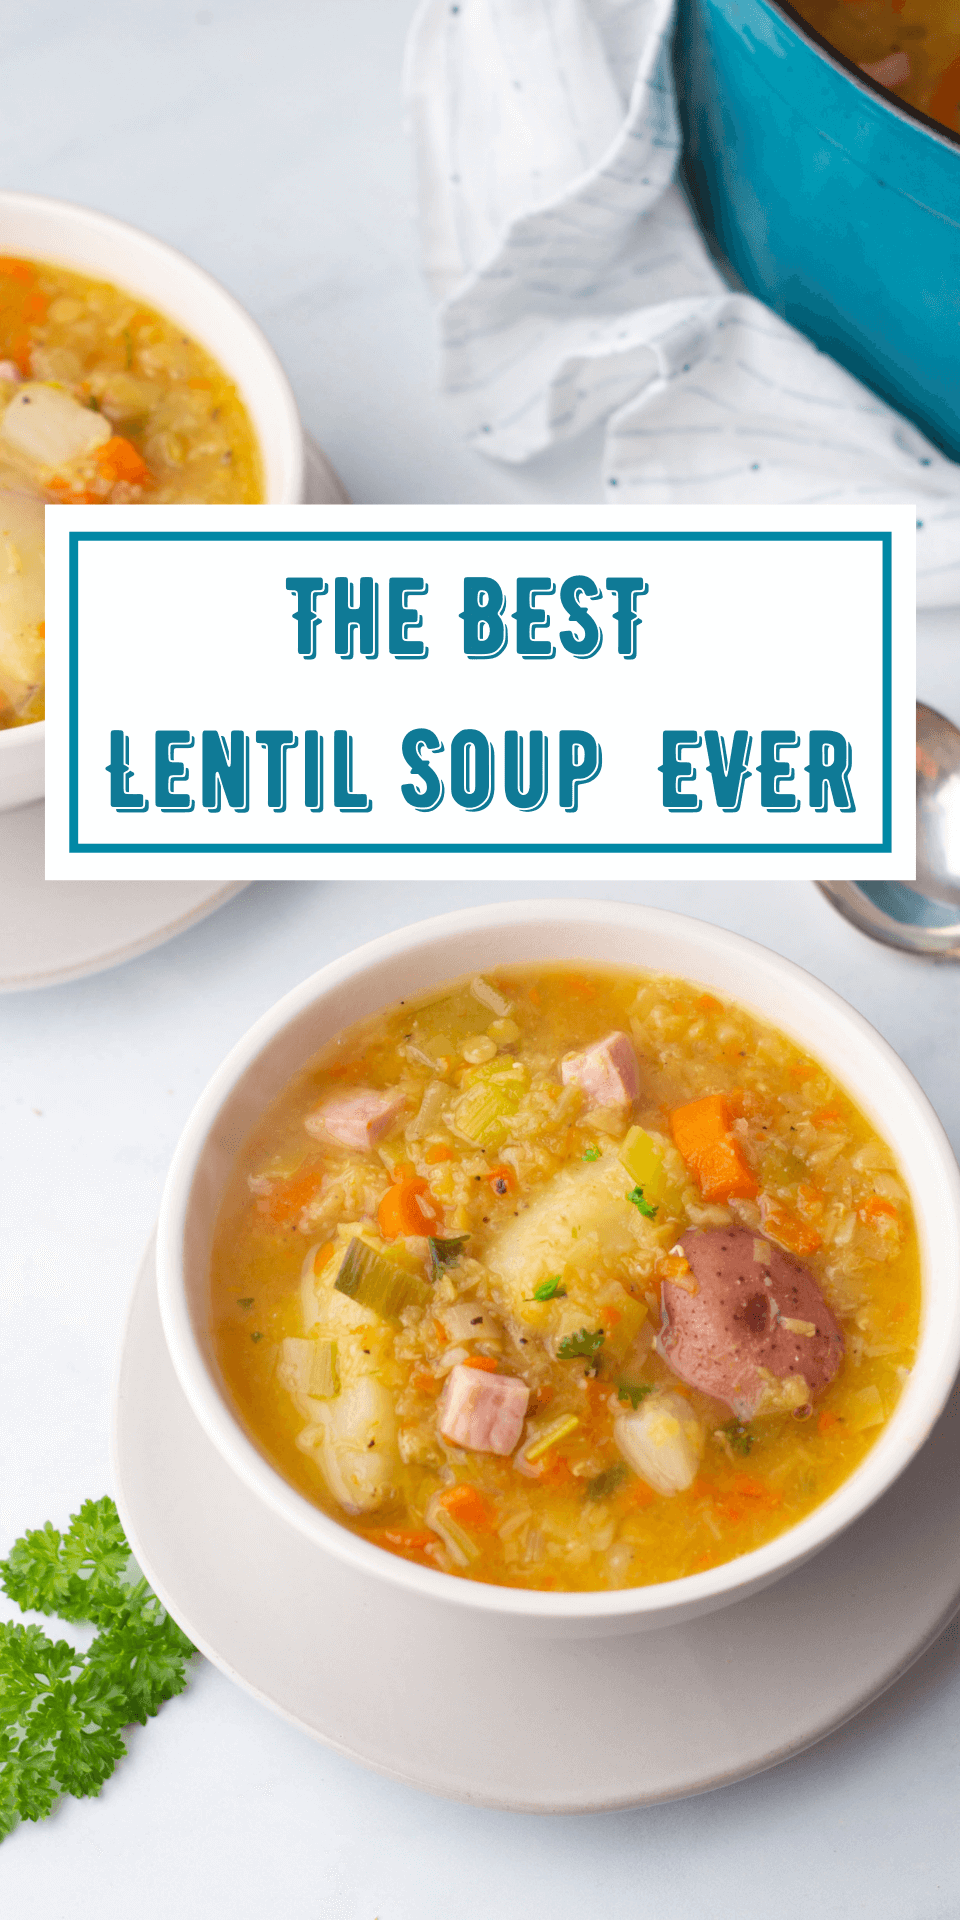 """Image of lentil soup with """"The Best Lentil Soup Ever"""" written in blue"""